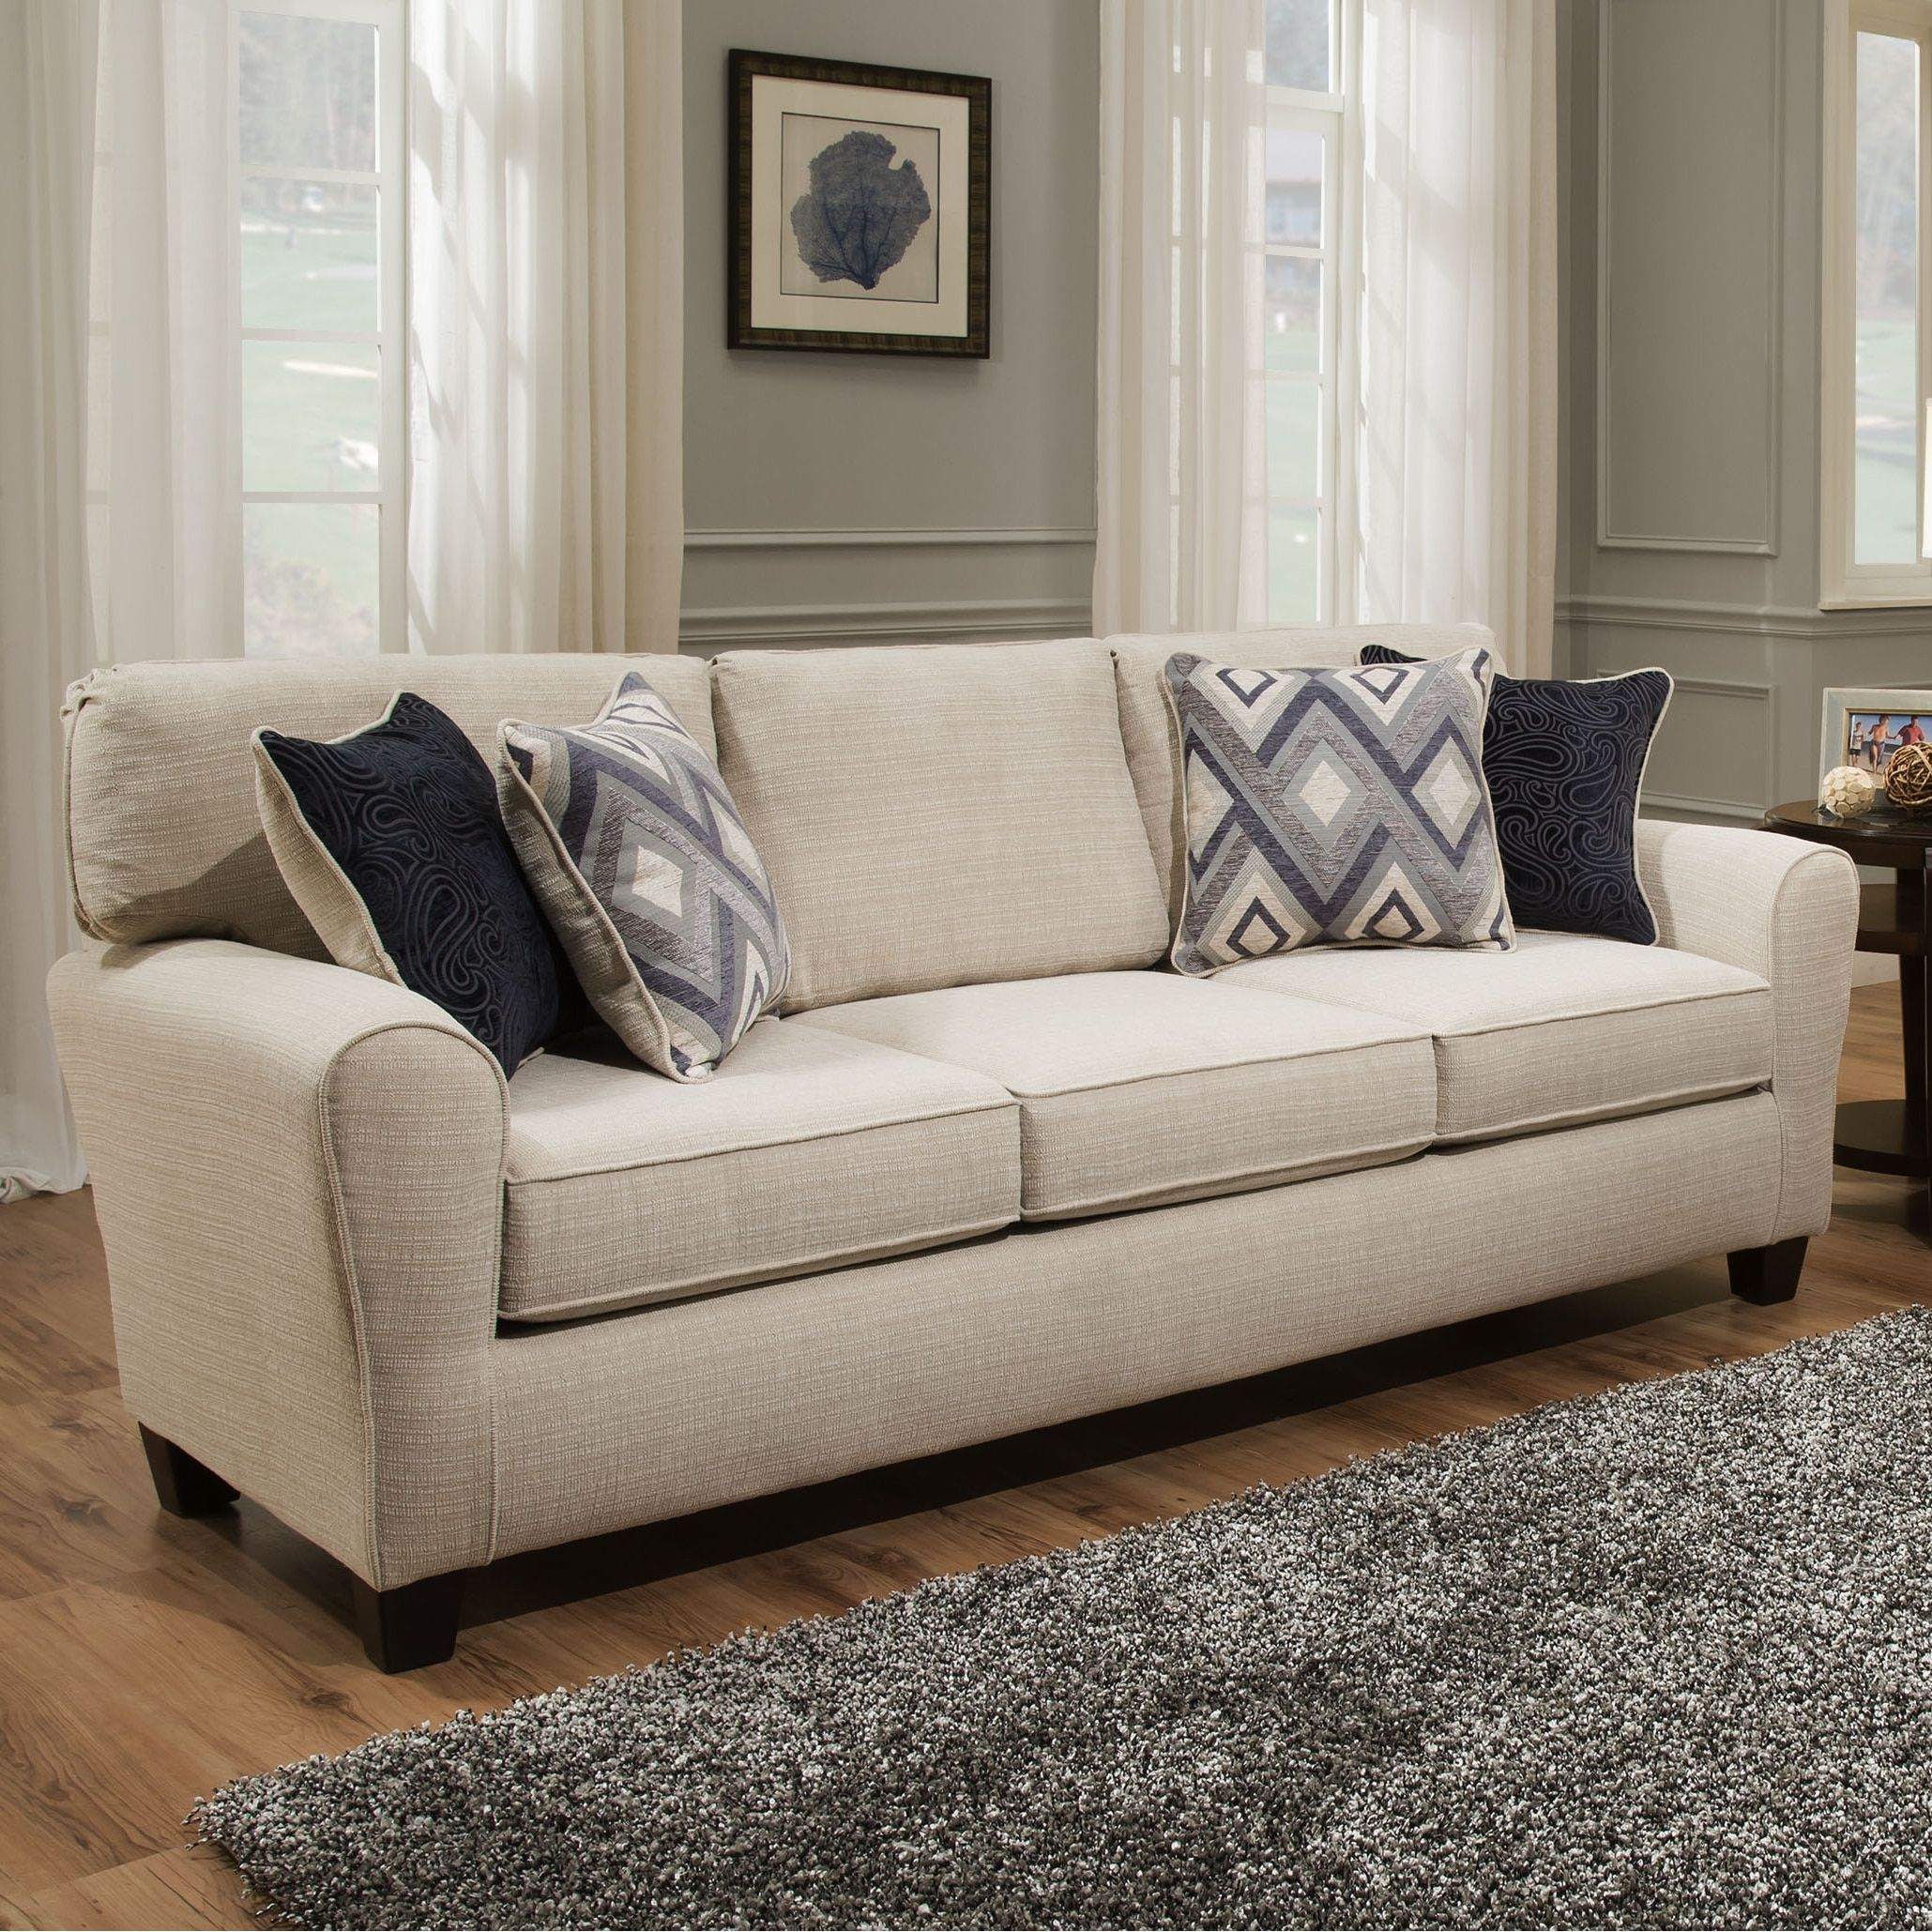 ardmore stationary sofa big comfy chair sofab madison cream ivory with accent pillows fabric